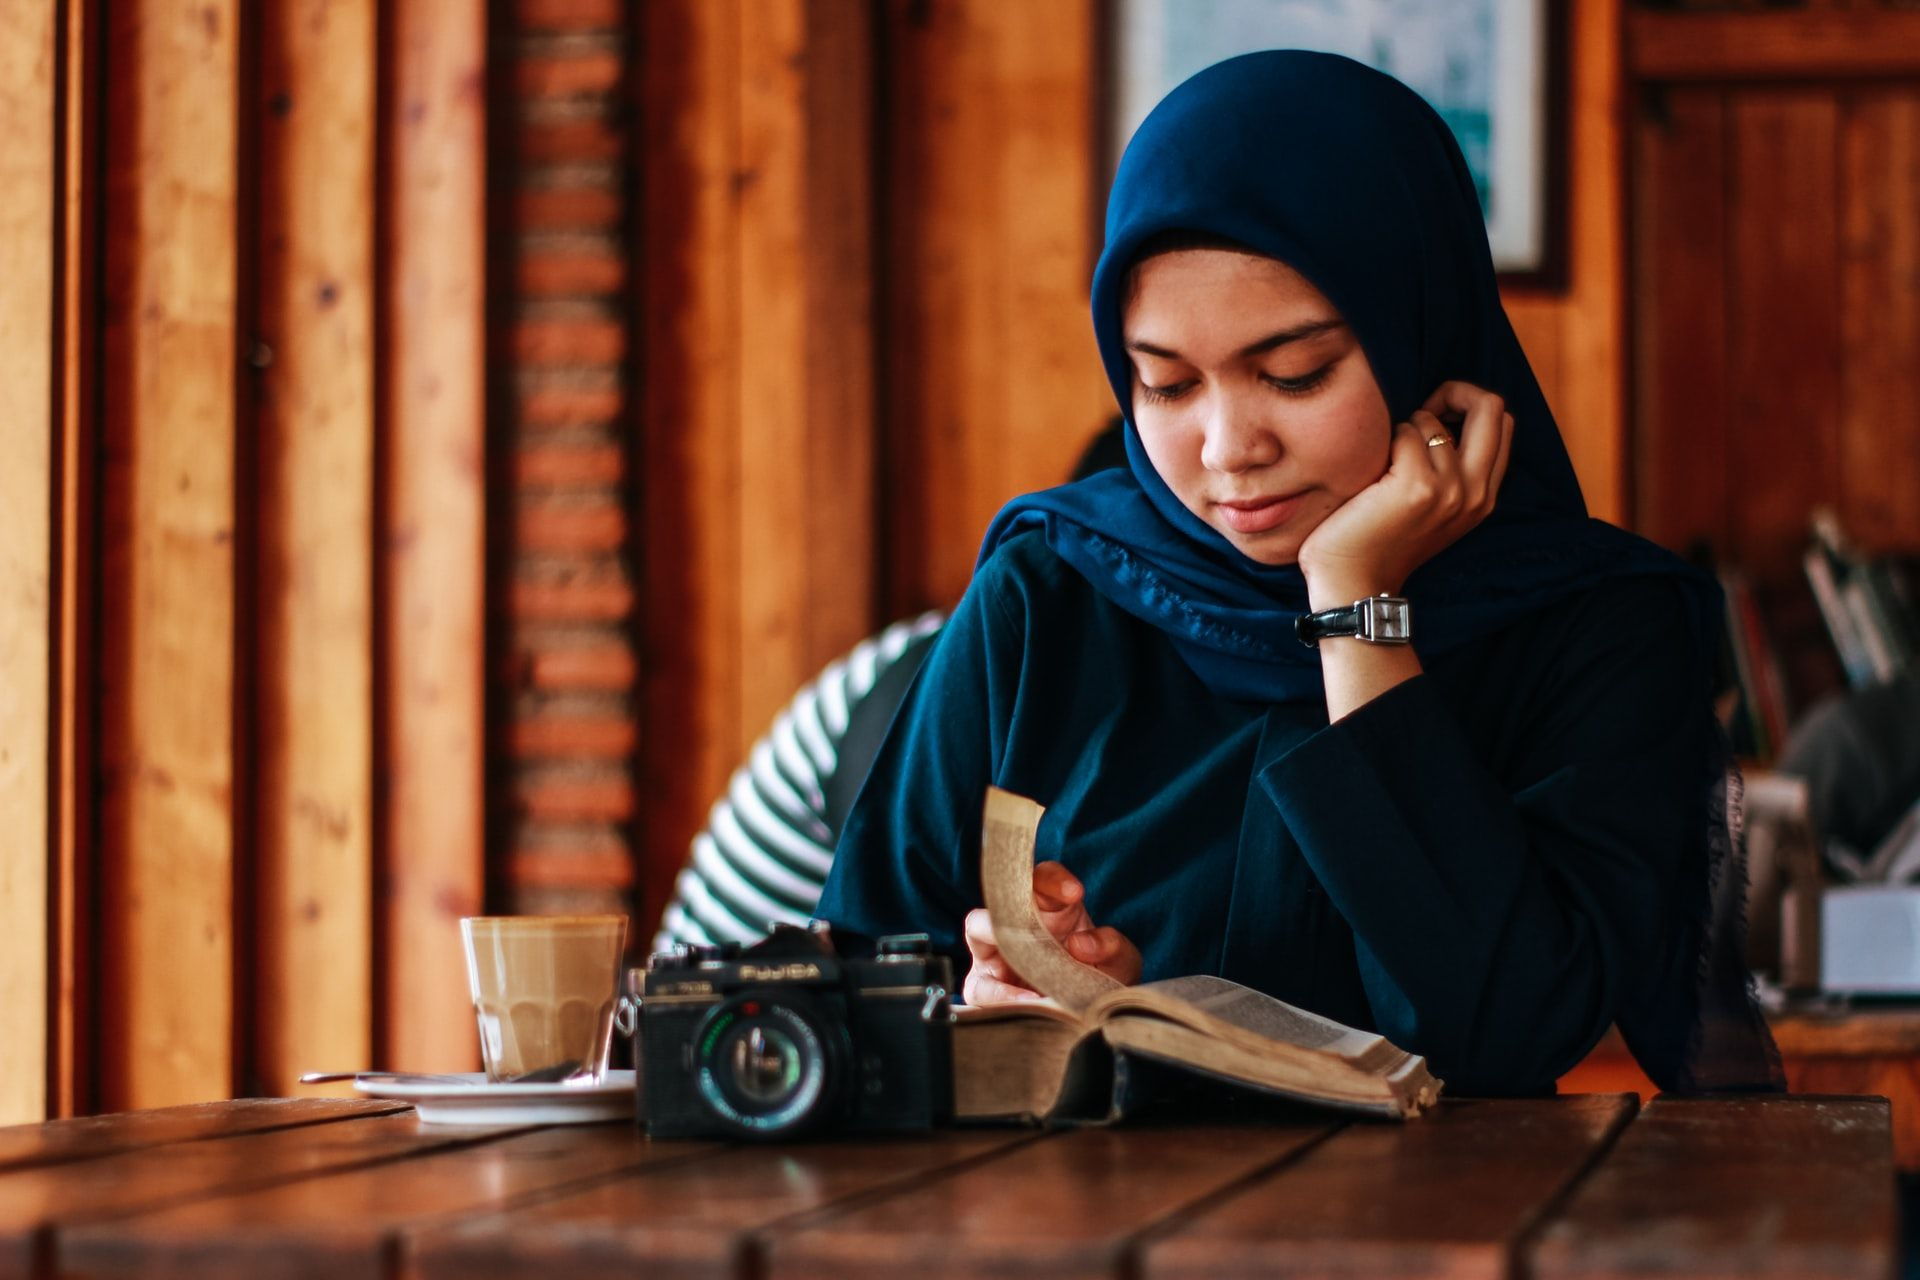 Woman with camera and book, how to read faster